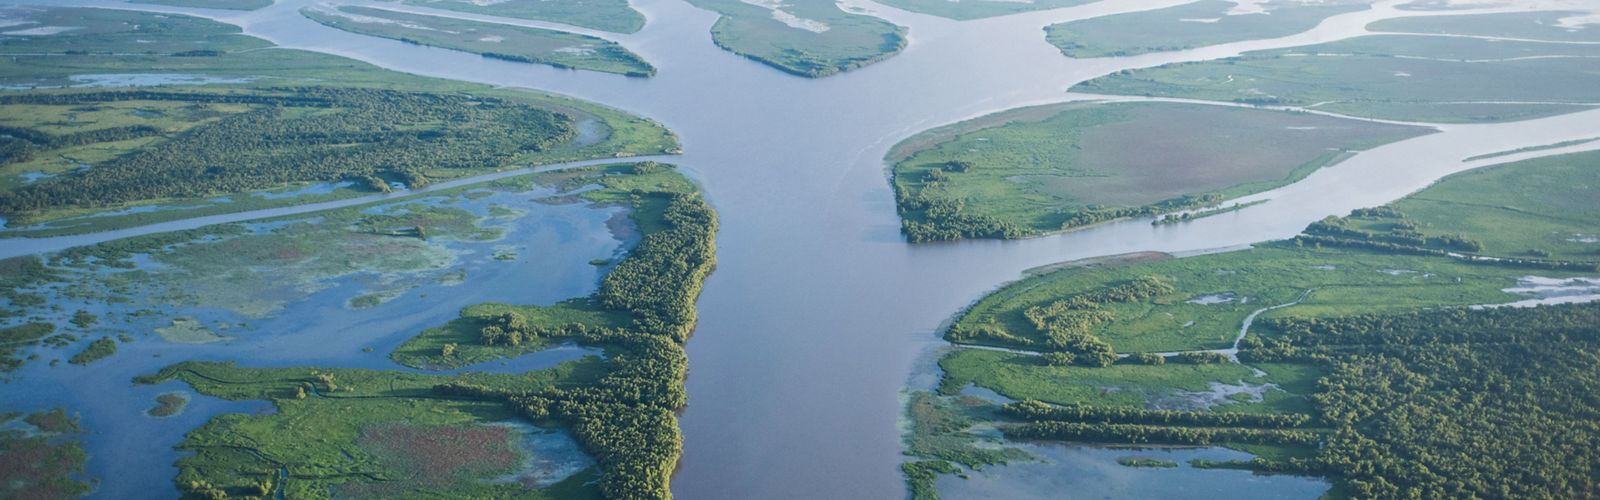 Aerial photo of the view looking south toward the Gulf of Mexico down the Wax Lake Delta, Louisiana.